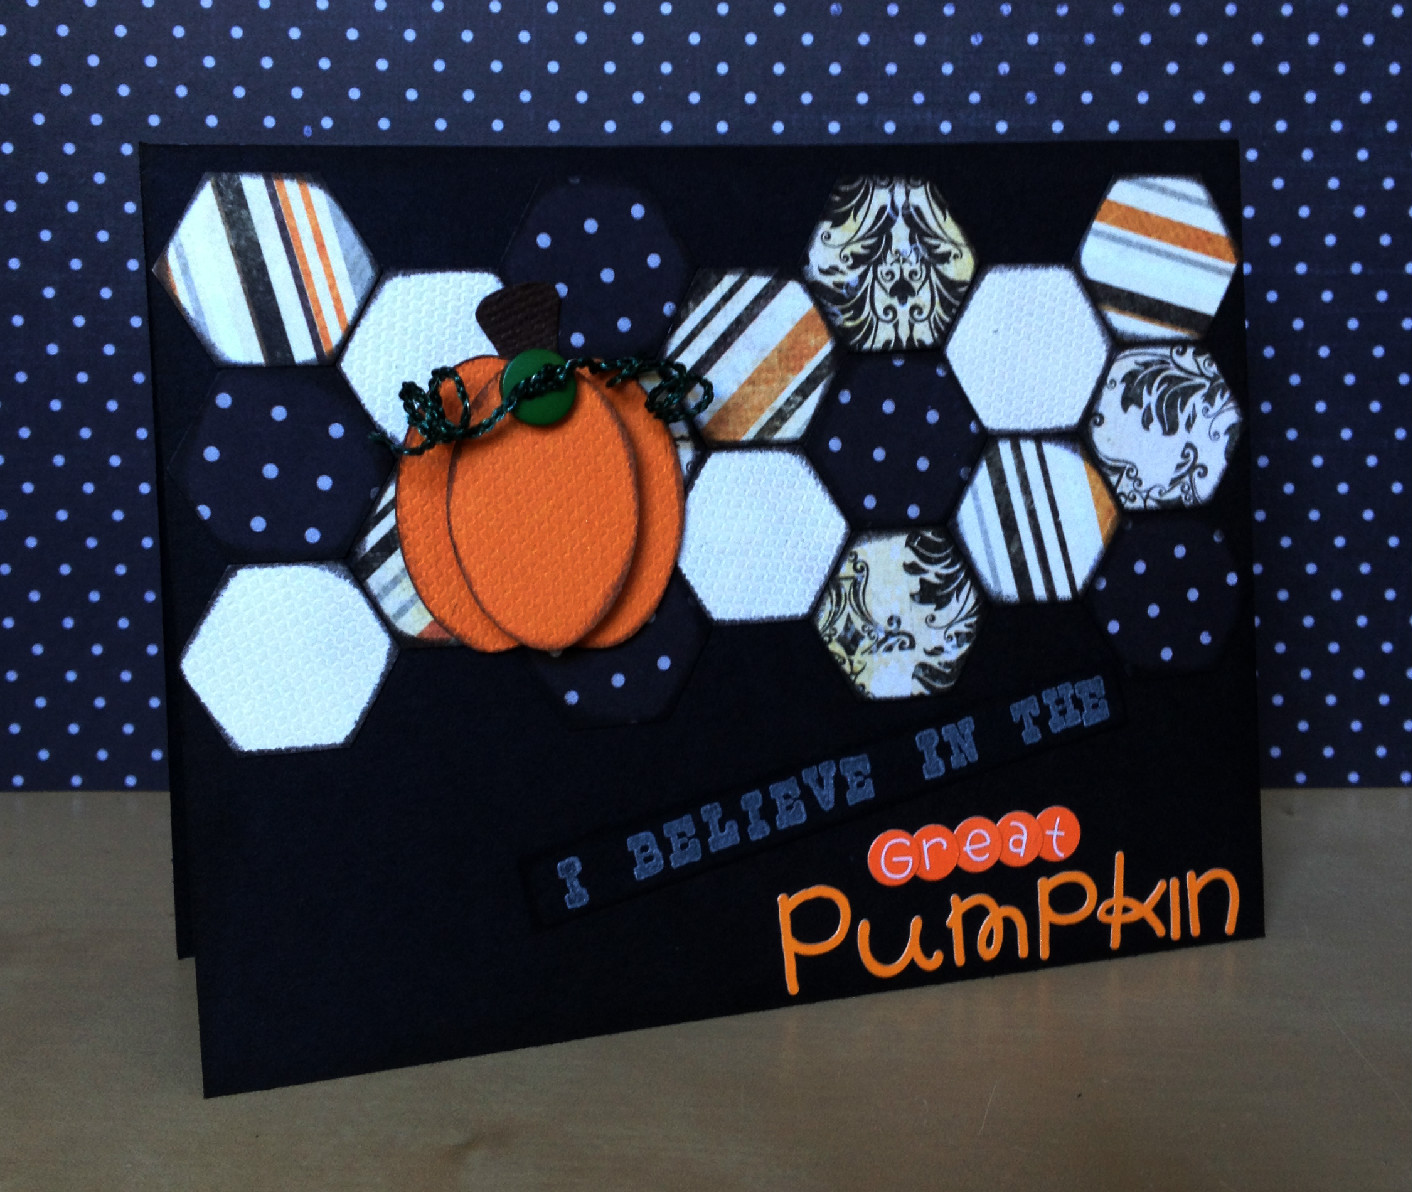 Its The Great Pumpkin Charlie Brown Quotes: My Journey Through Life And Scrapbooking